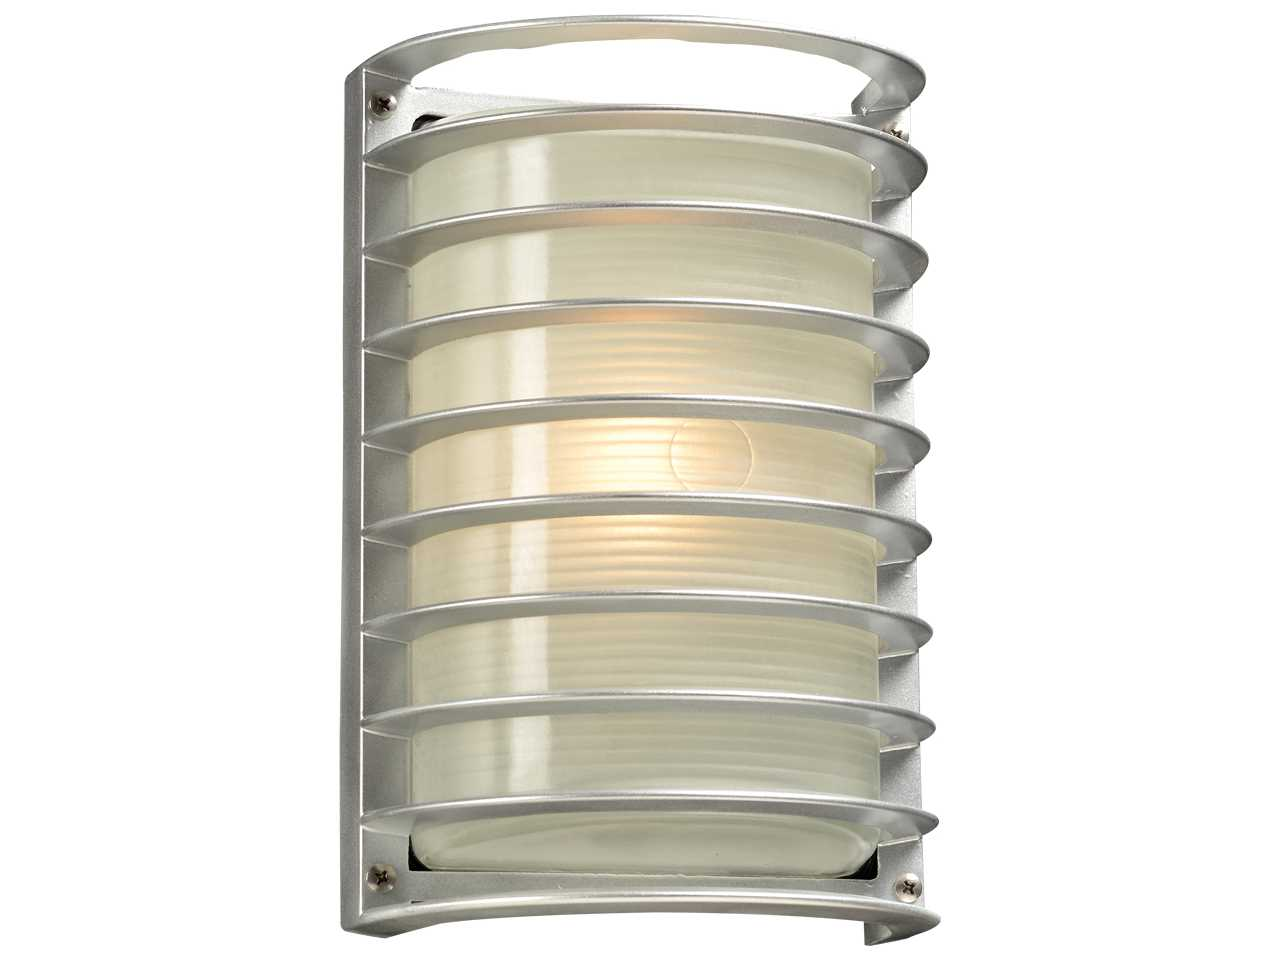 Plc Lighting Sunset Silver Fluorescent Gu24 Outdoor Wall Light Sold In 2 Plc2038sl113gu24